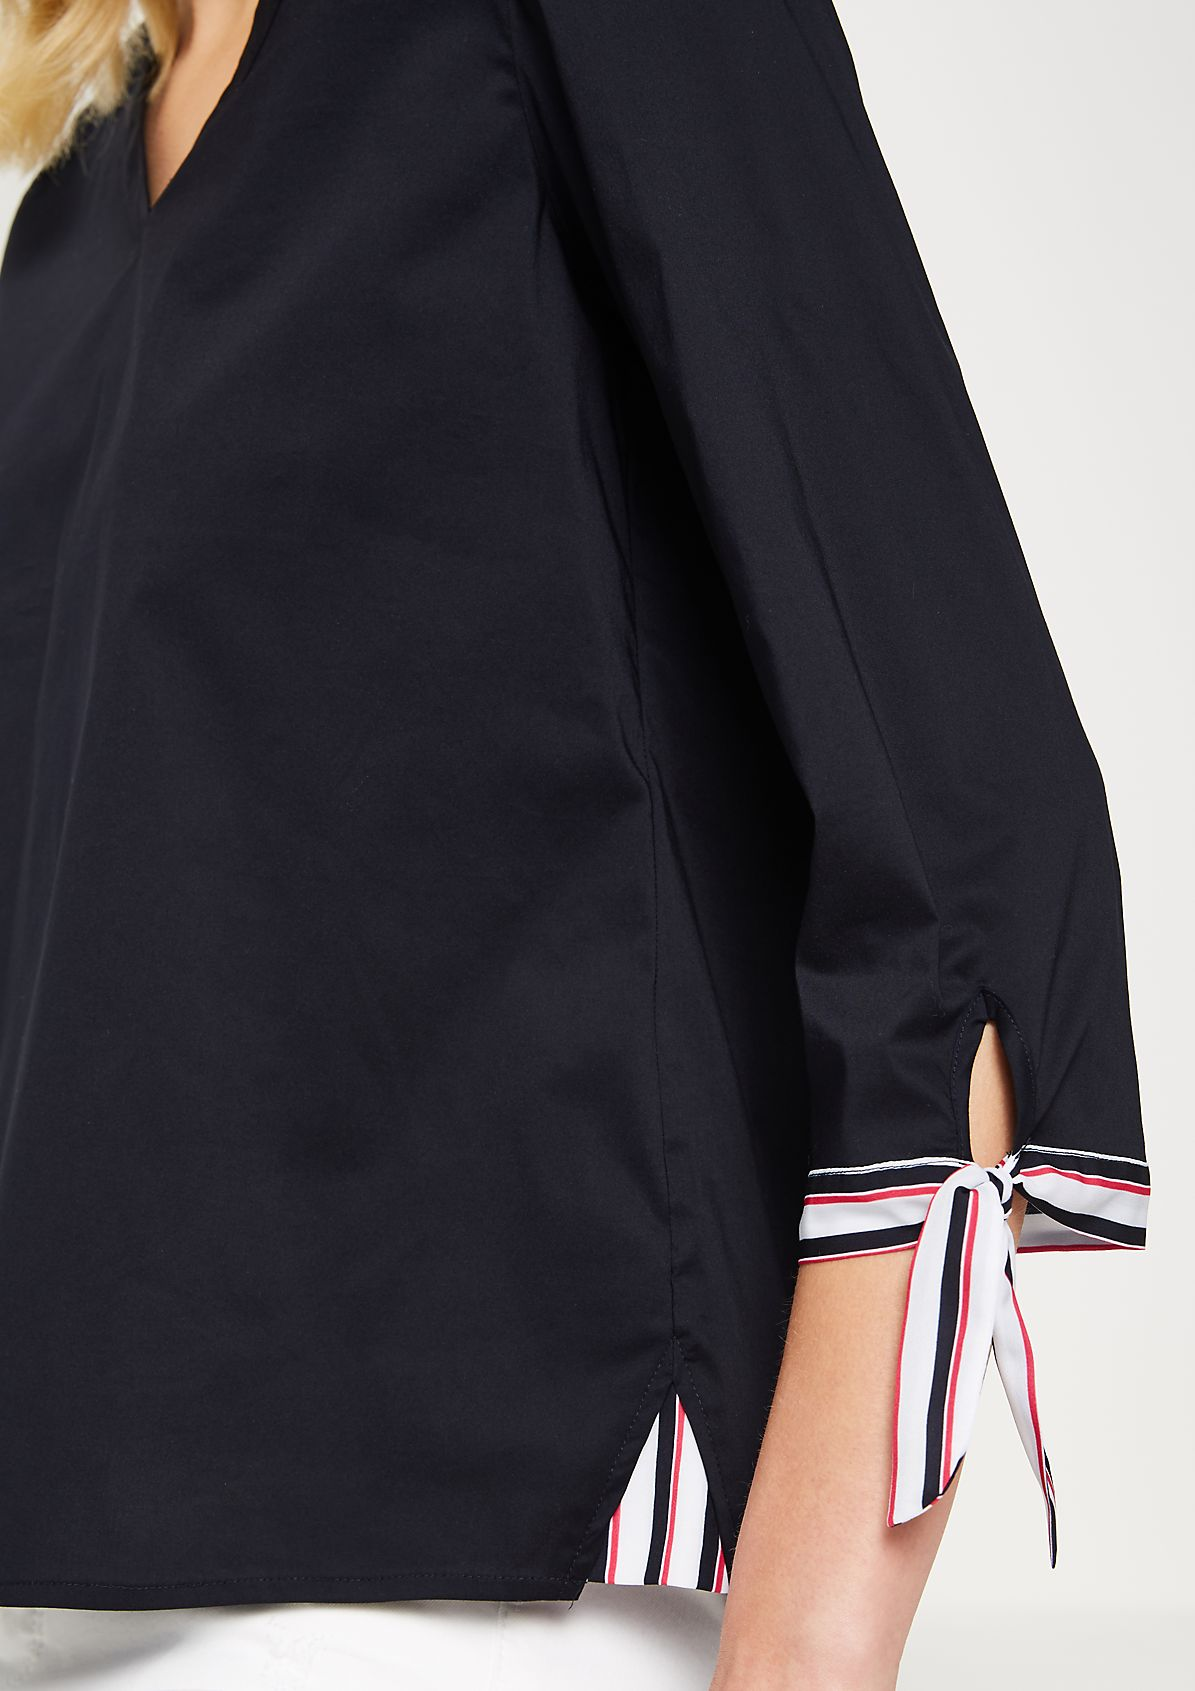 3/4-sleeve blouse with fine striped details from comma